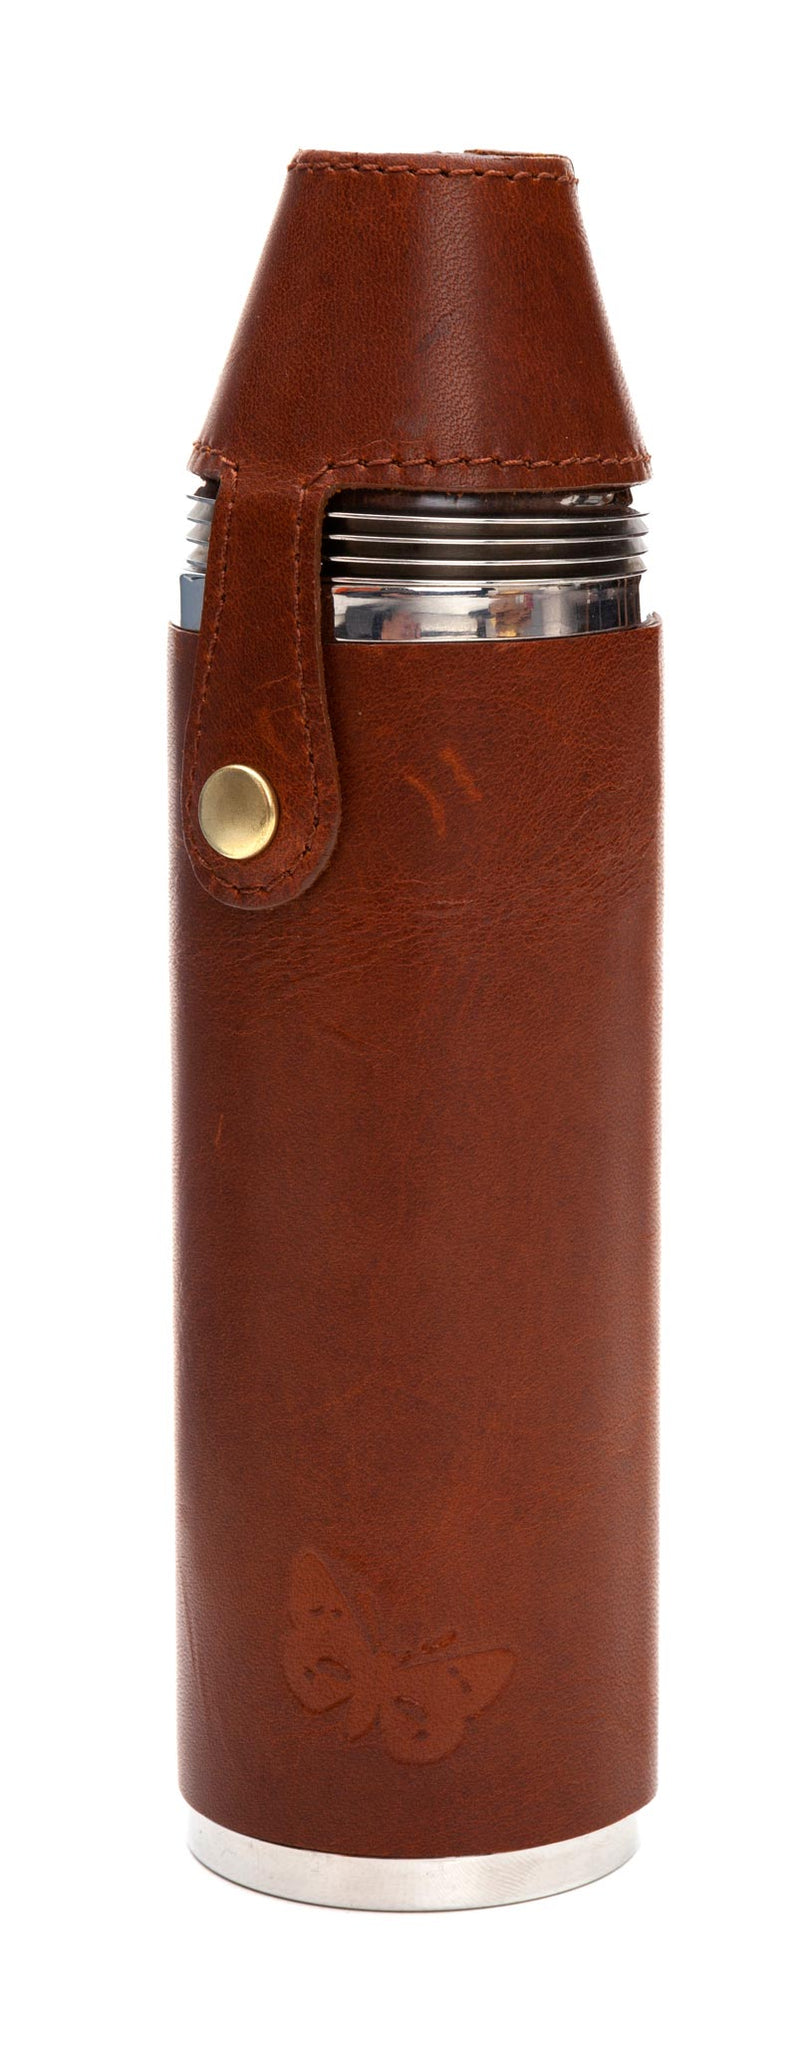 Regent - 10oz  4 Cup Flask - Country Pursuits -  Waxed Leather - Brown - Regent Tailoring